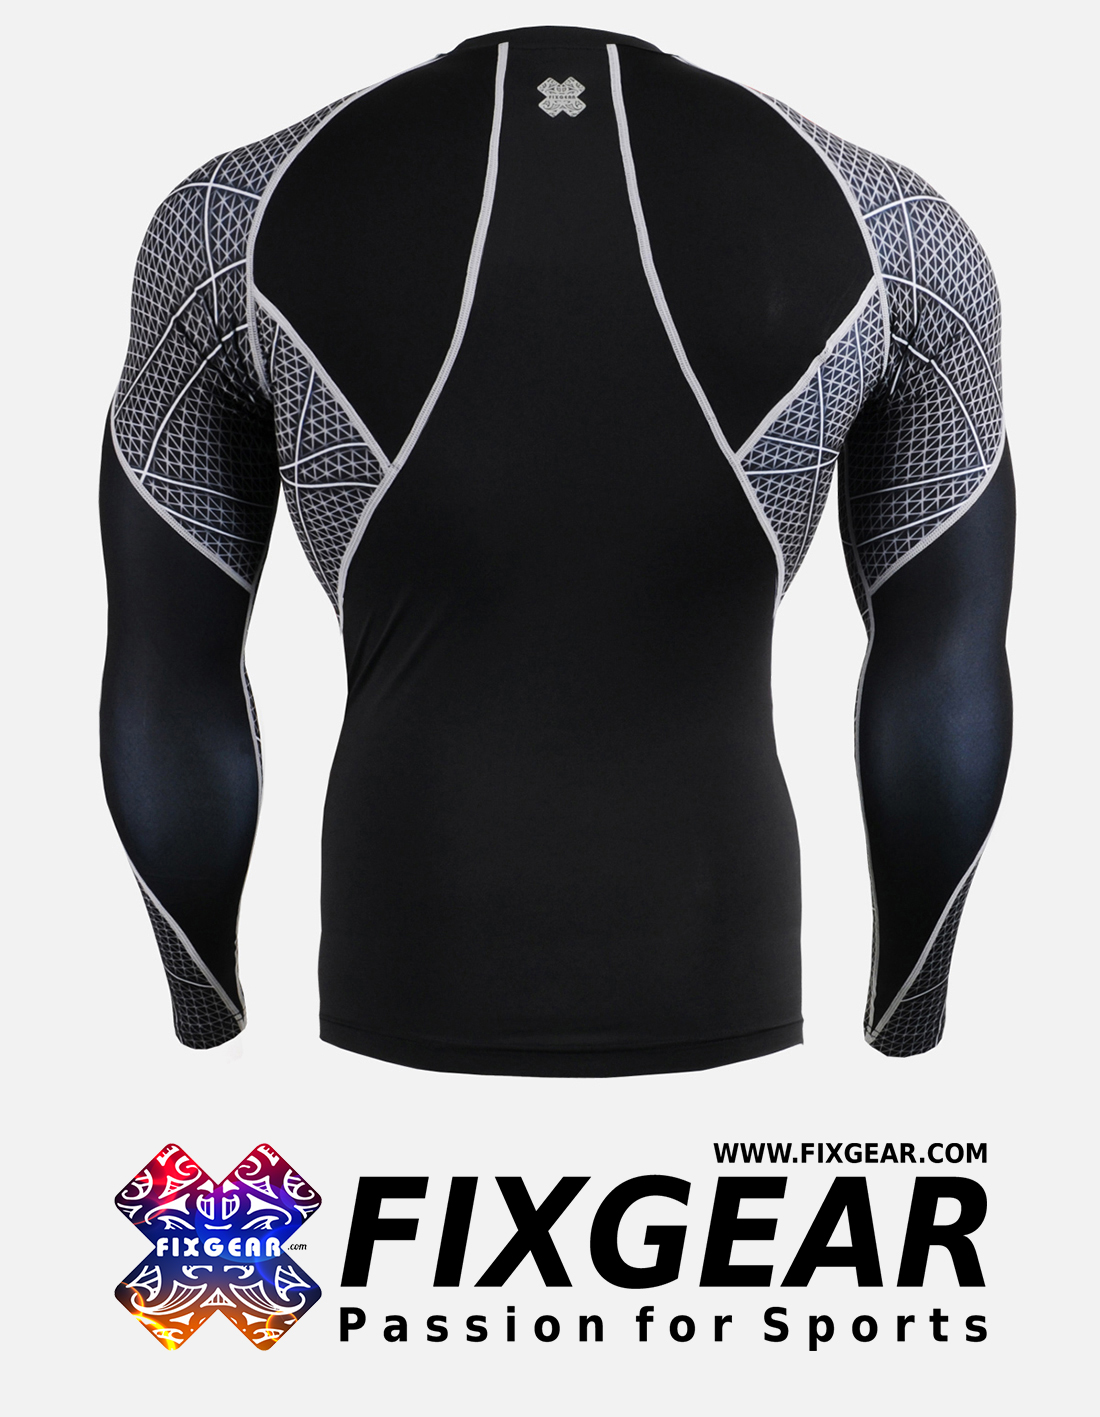 FIXGEAR C3L-B70 Compression Base Layer Shirt